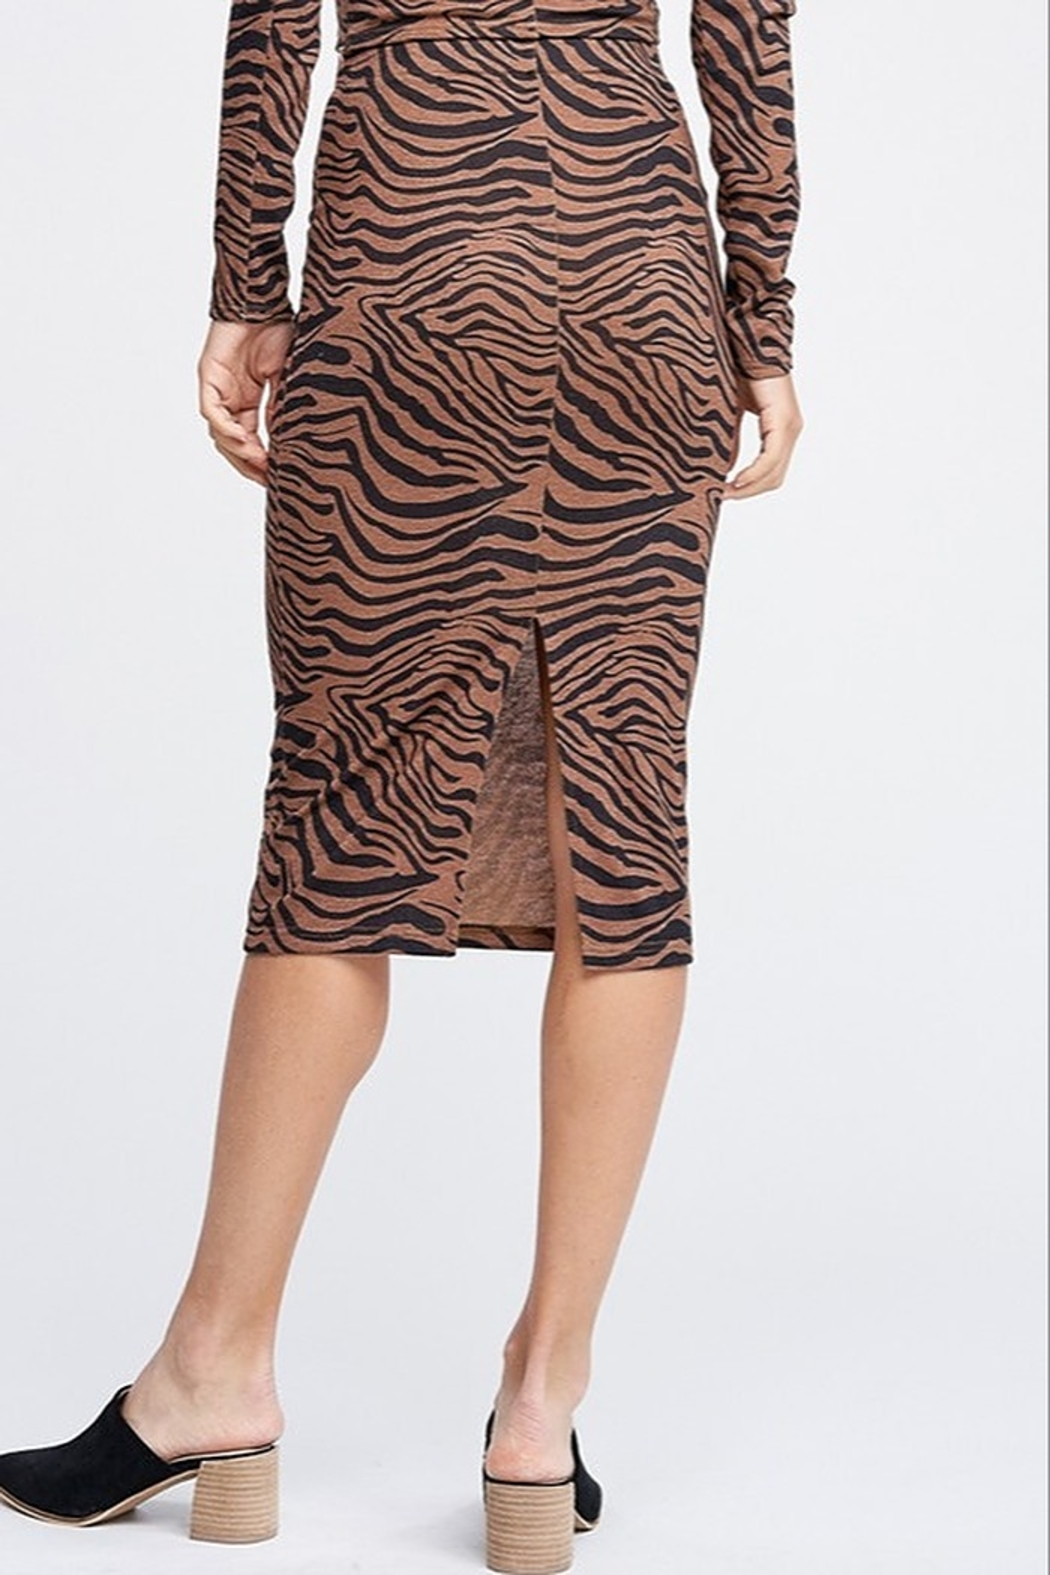 Emory Park Tiger Print Midi Skirt - Side Cropped Image